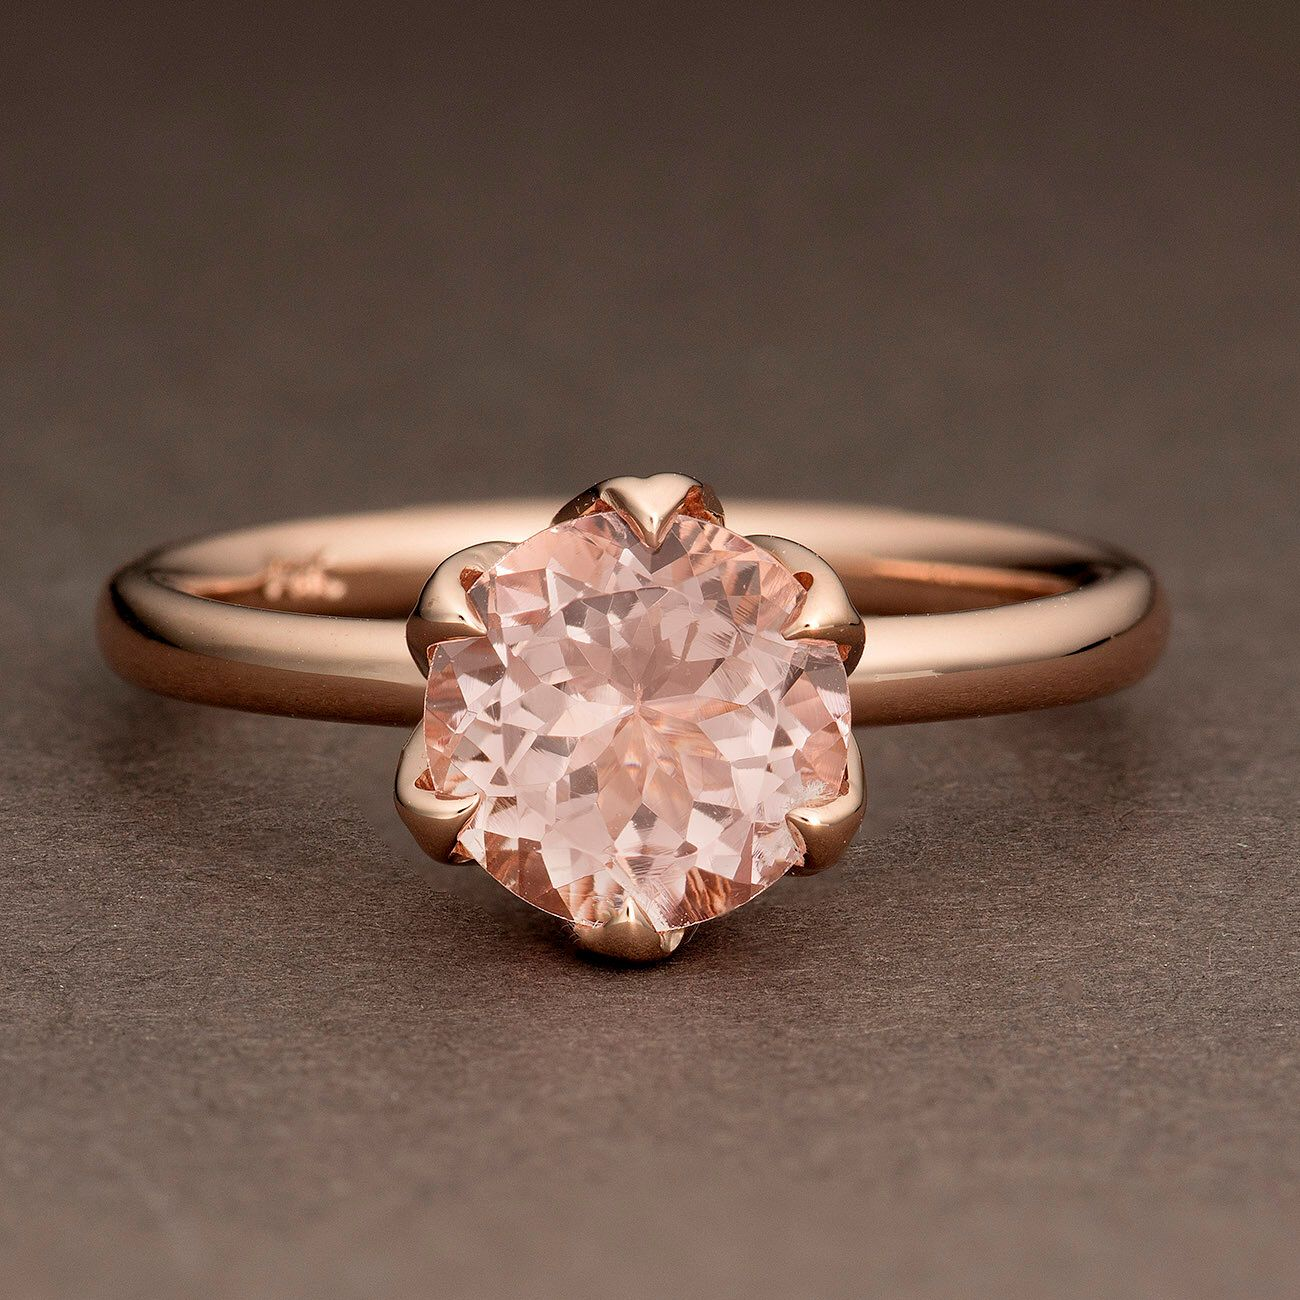 Kunzite Rose Gold Ring, Pink Stone Ring, Tulip Flower